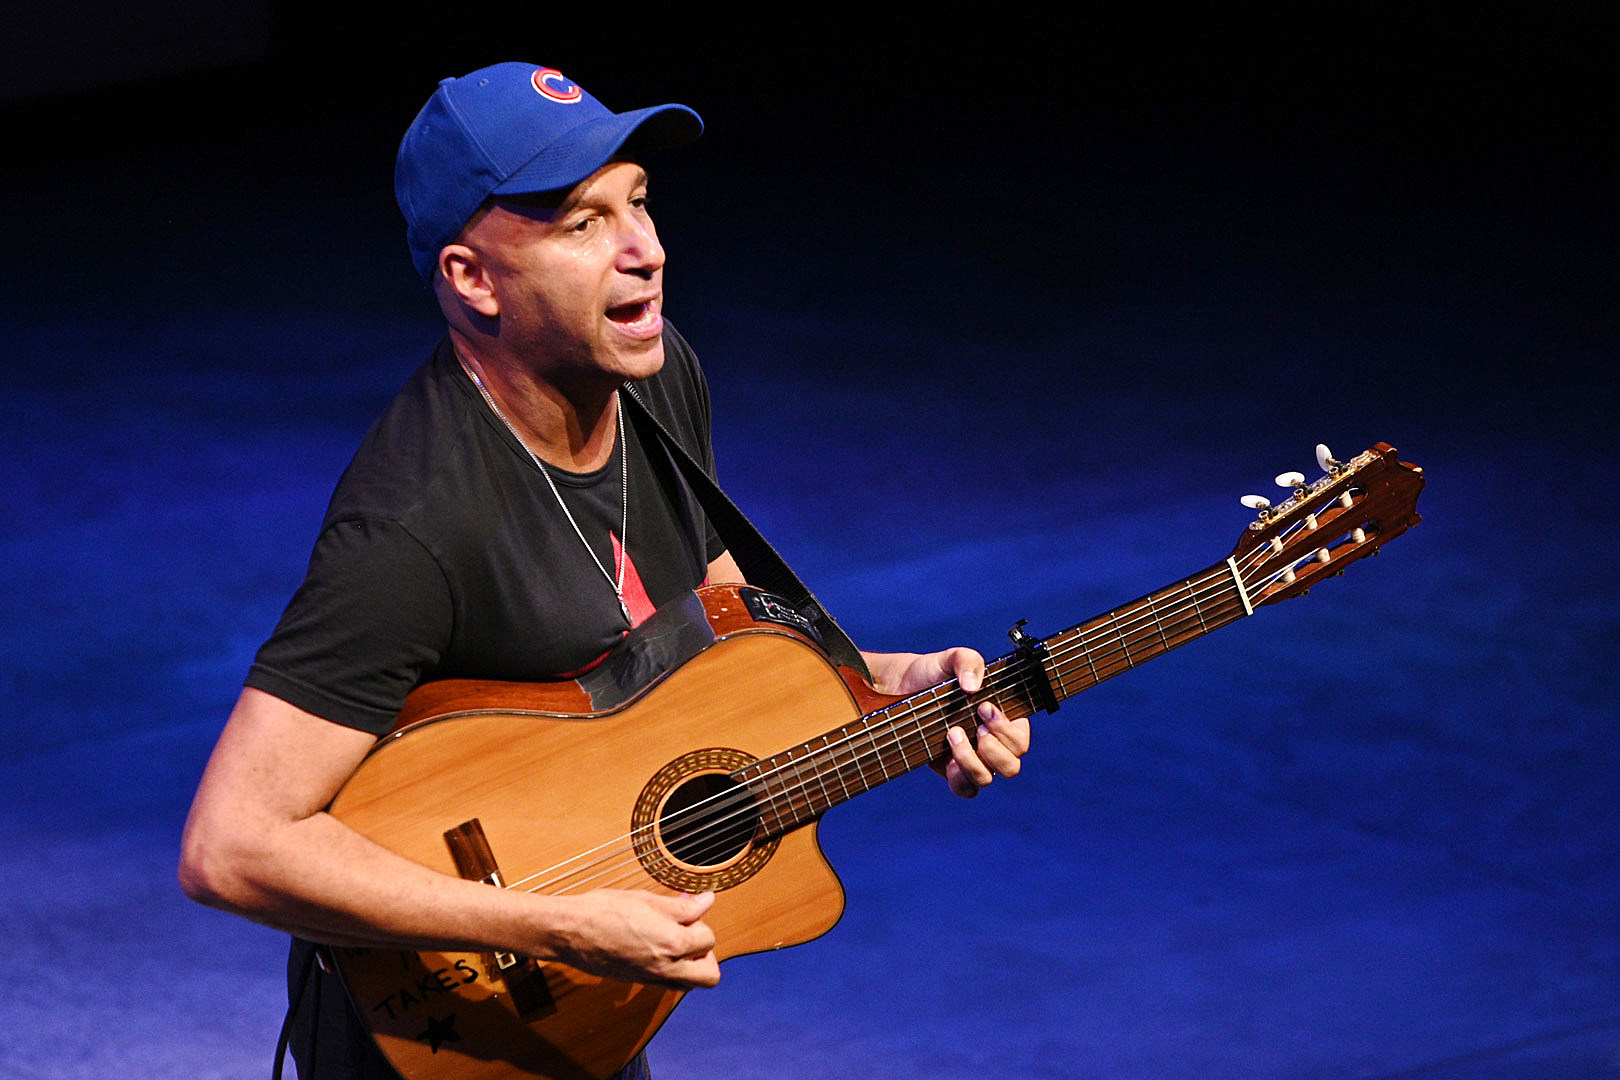 Tom Morello Sings Powerful Slavery Song 'You Belong to Me'